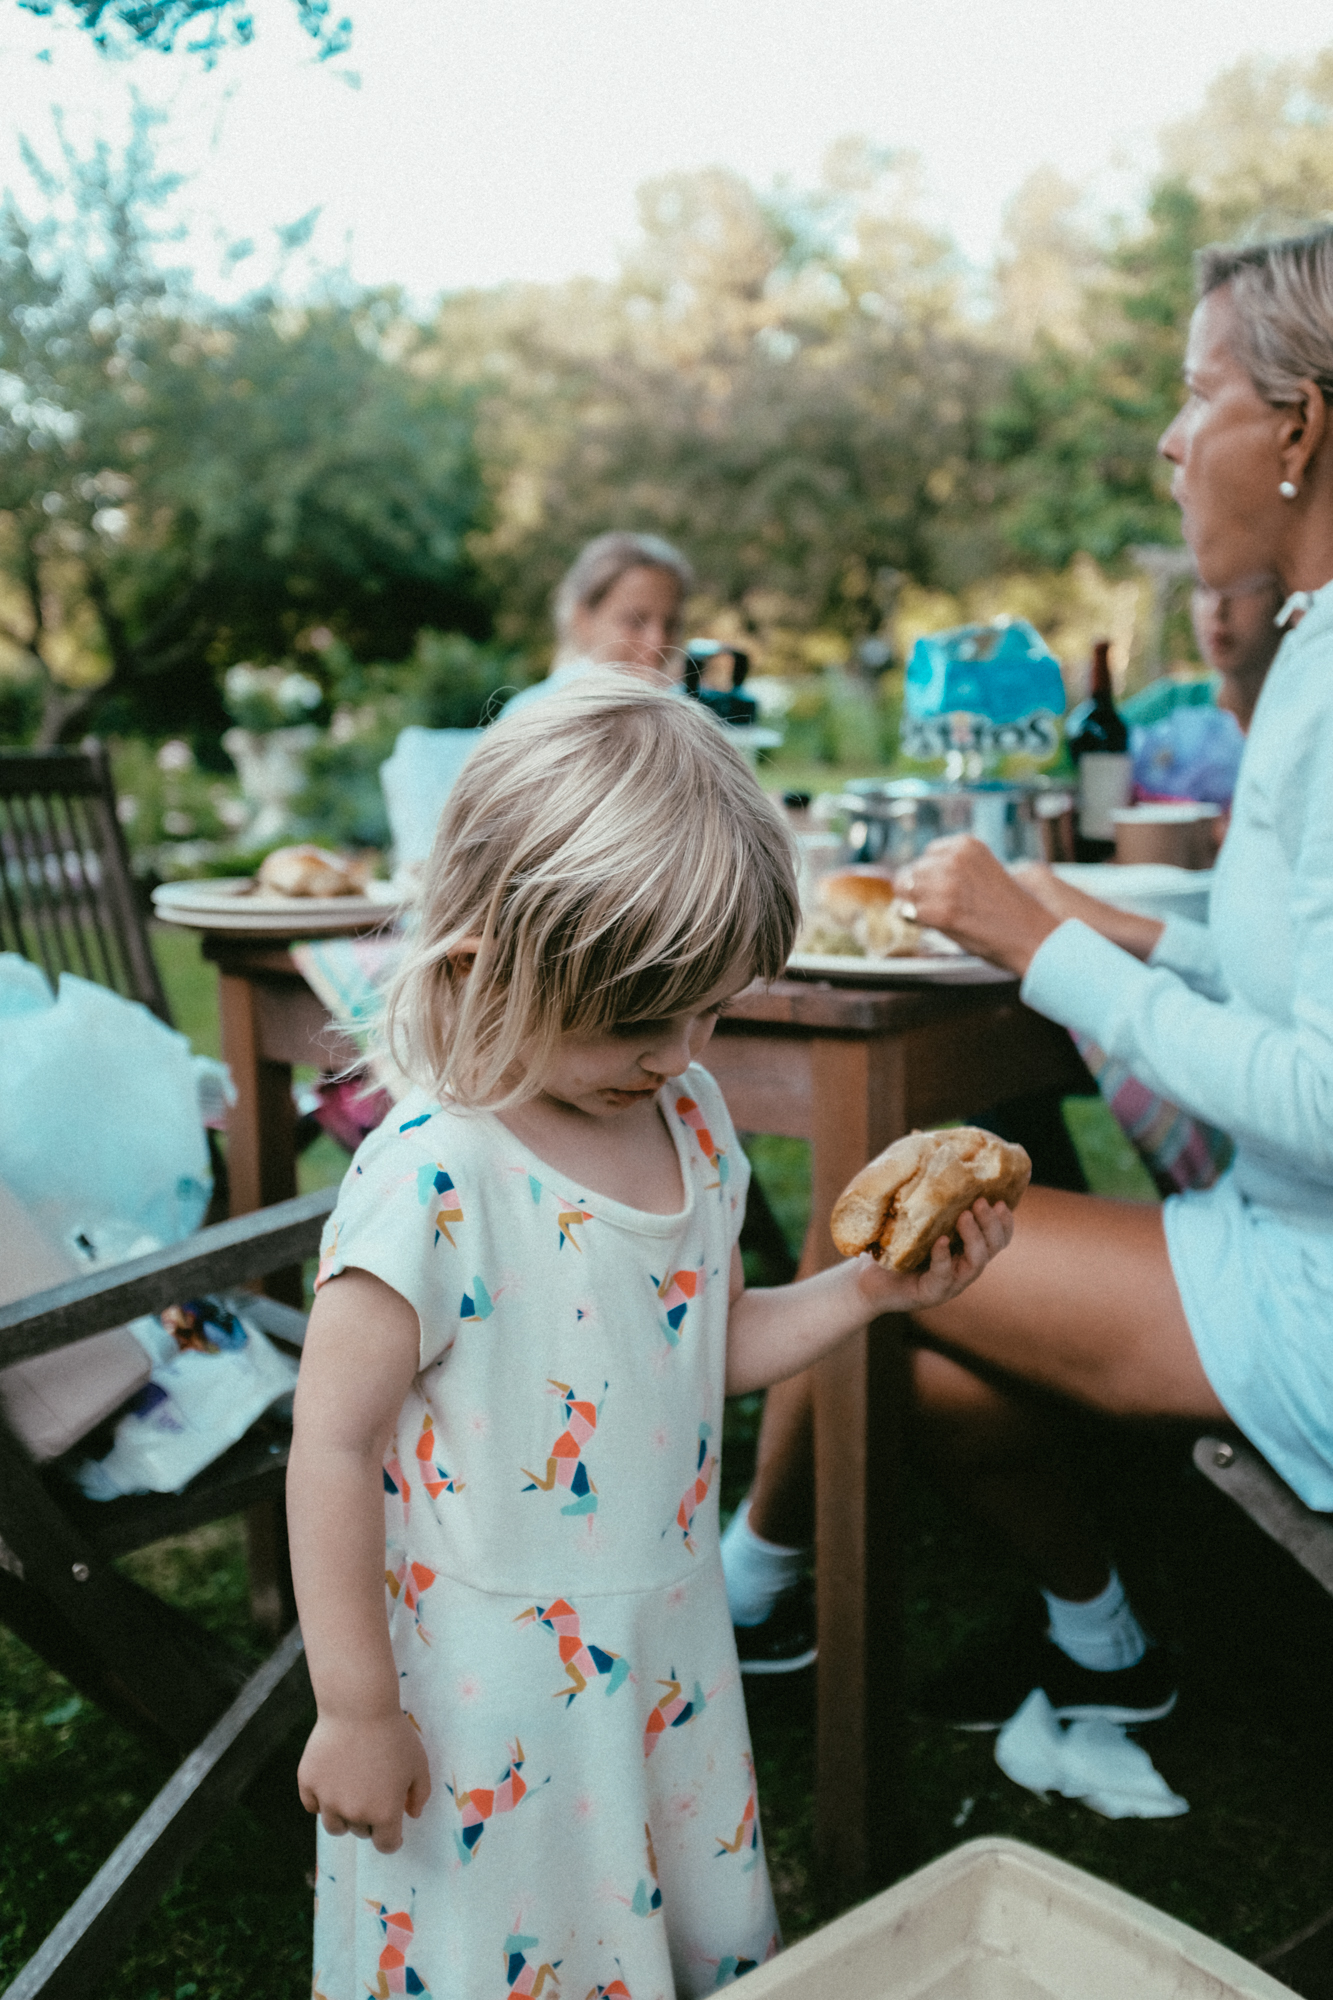 A little girl looks is surrounded by people at a barbeque